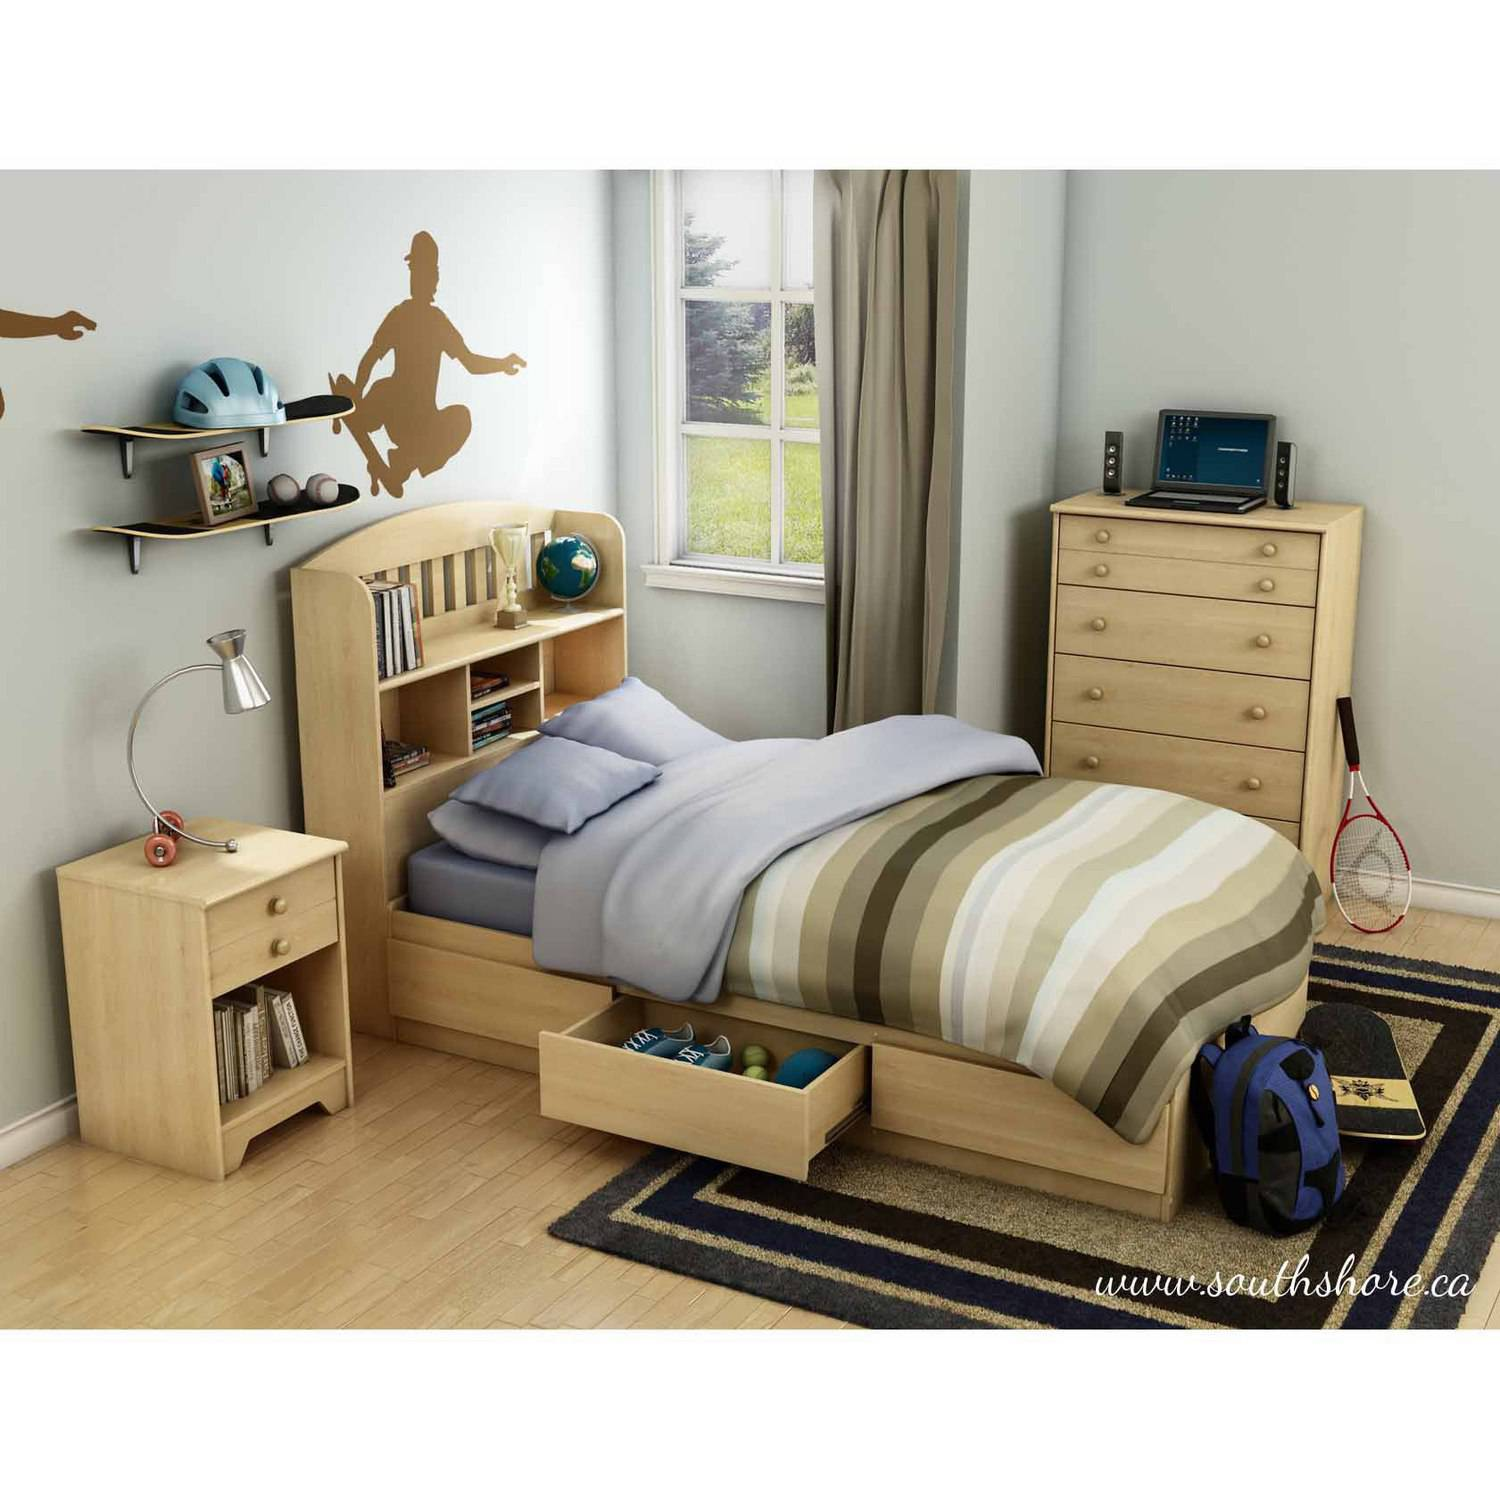 south shore popular kids bedroom furniture collection 13773 | 44e2fca7 1203 4c0d adfc 94212156e7e4 1 40d2de9fb713a70a5431be6f2d465c08